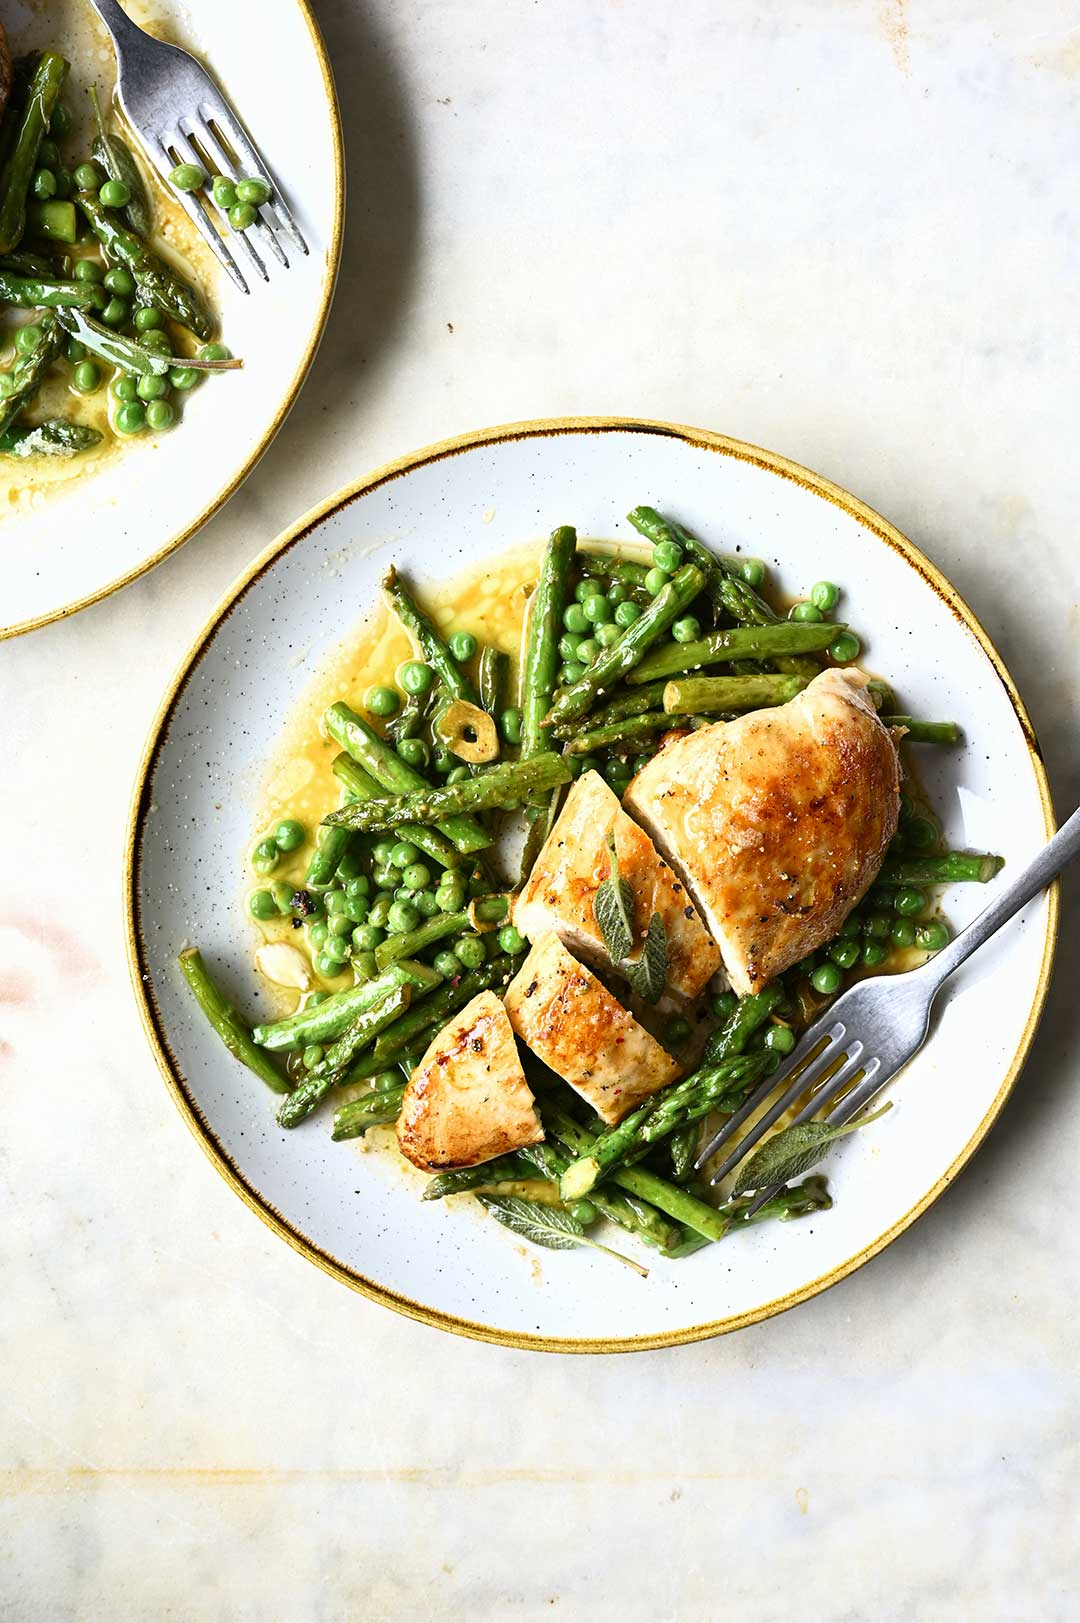 serving dumplings | Chicken with browned butter baked asparagus